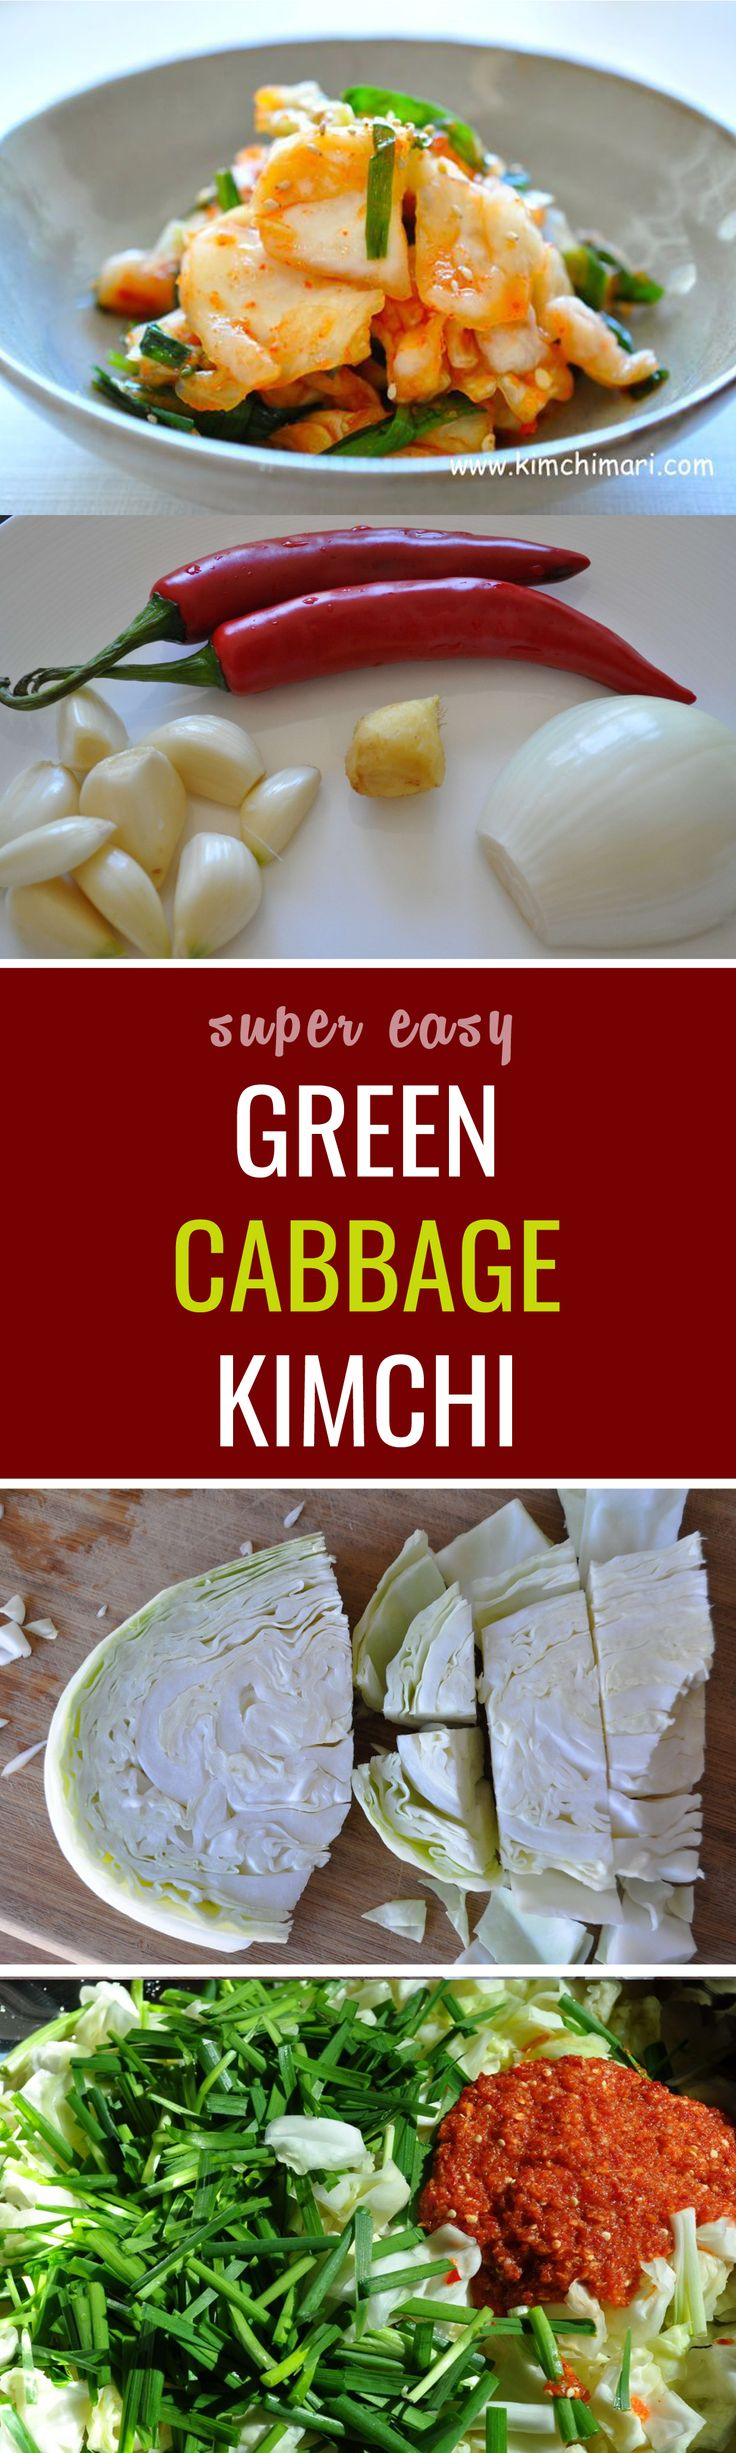 Fresh, sweet budget kimchi made with green cabbage!I first tasted cabbage kimchi in 1976 when when we moved to India. With no access to any kind of Korean vegetable, the only vegetable we could get was the good old cabbage.